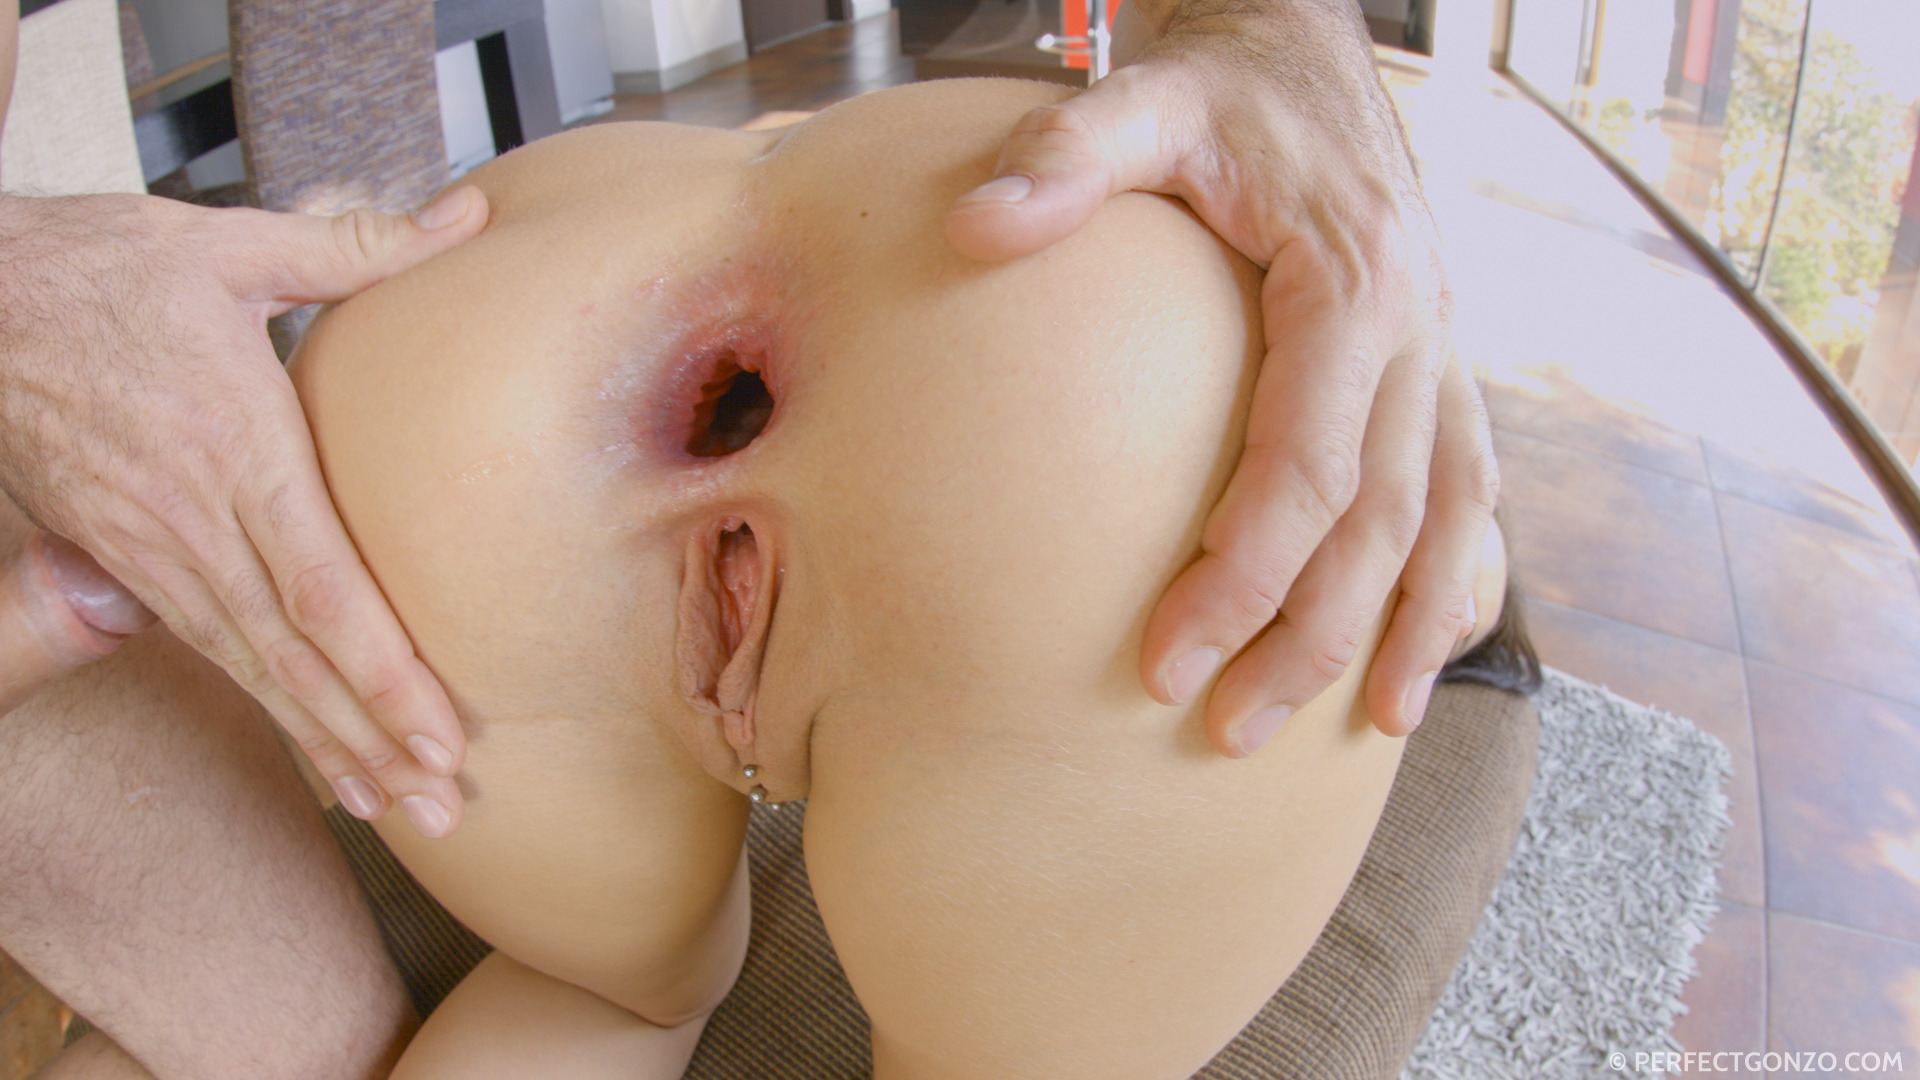 All internal pussy drilling ends in creampie